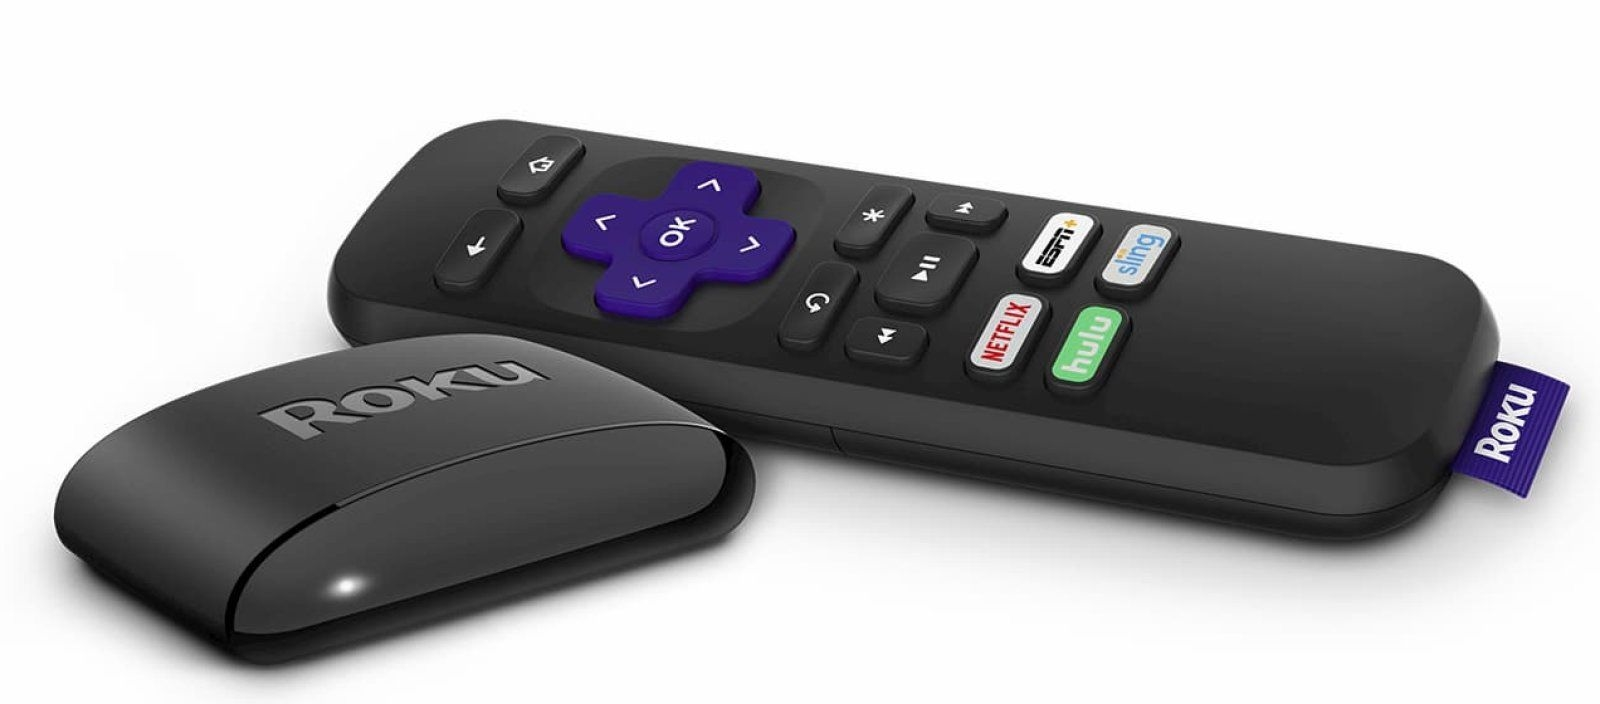 Roku claims 36 million active users as streaming continues to spread | DeviceDaily.com